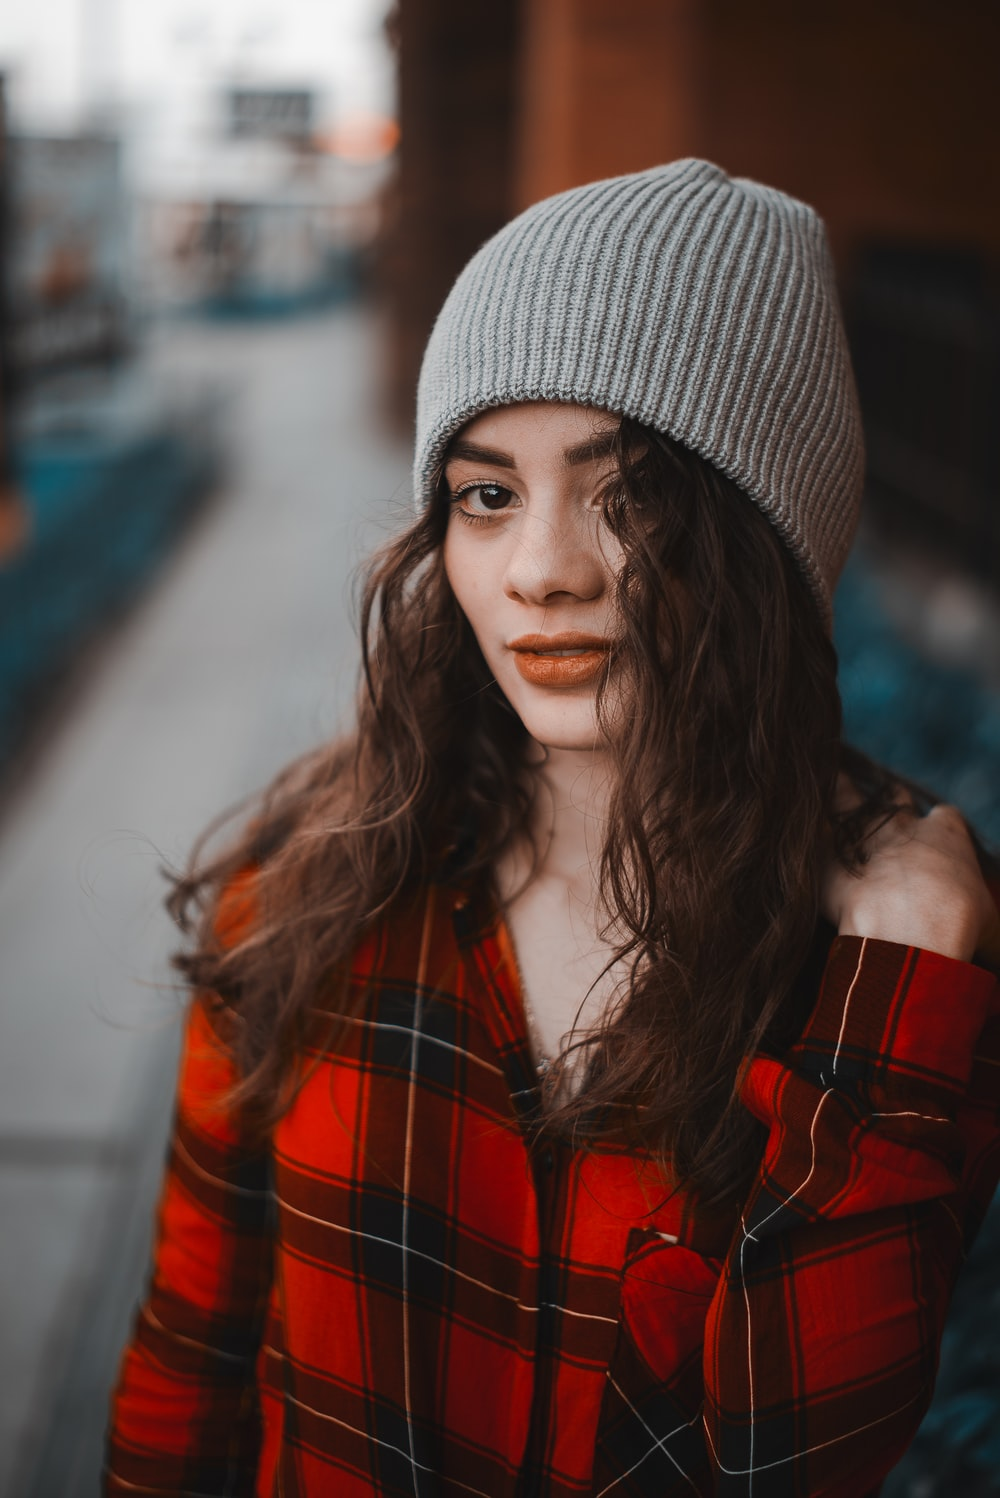 woman in red and black plaid jacket wearing gray knit cap